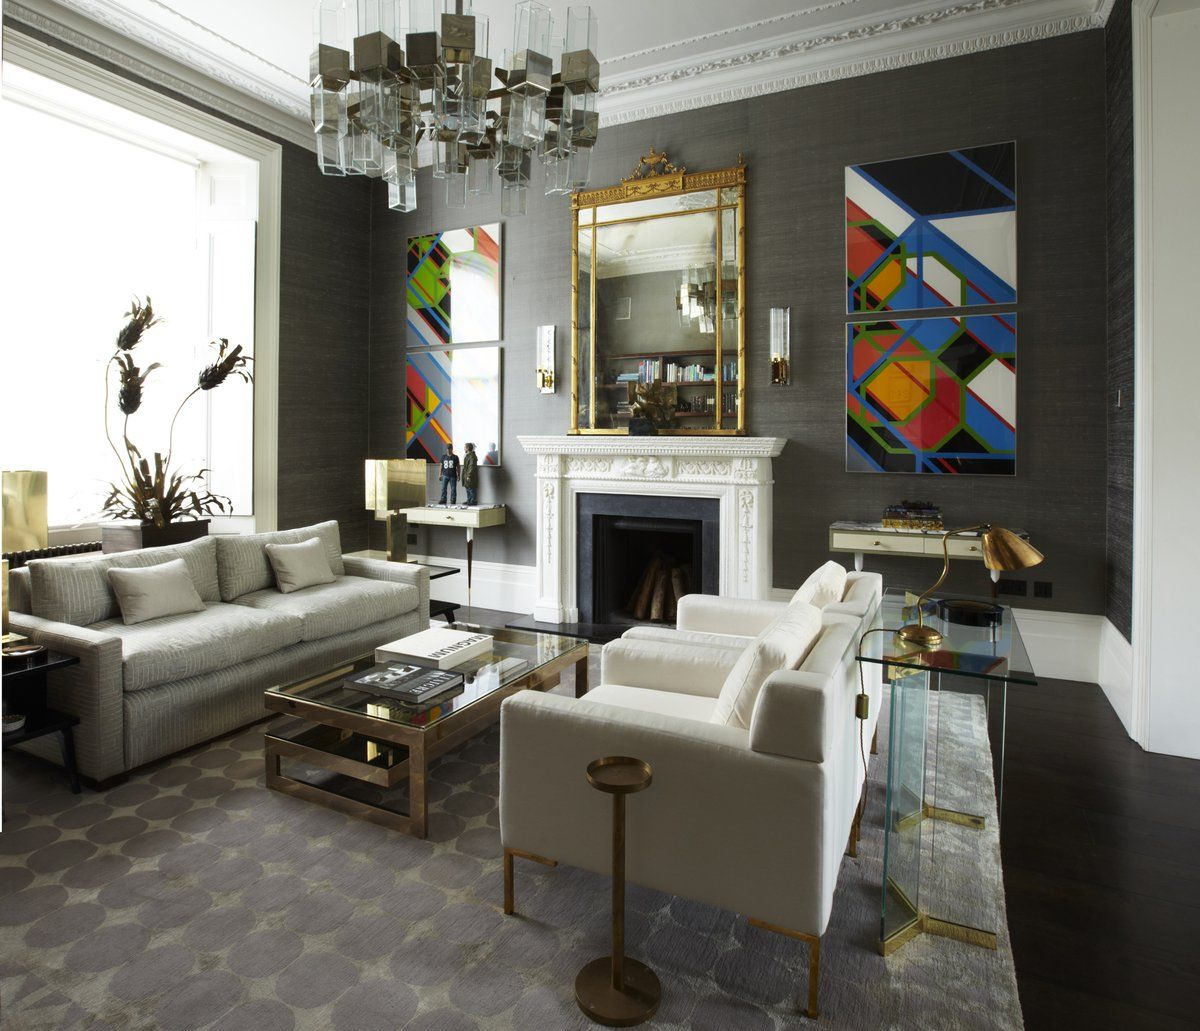 Beautiful Images Of Peter Mikic Interiorss Pembridge Gardens London Project On Explore This Family Home In GB And Other Breath Taking Designs